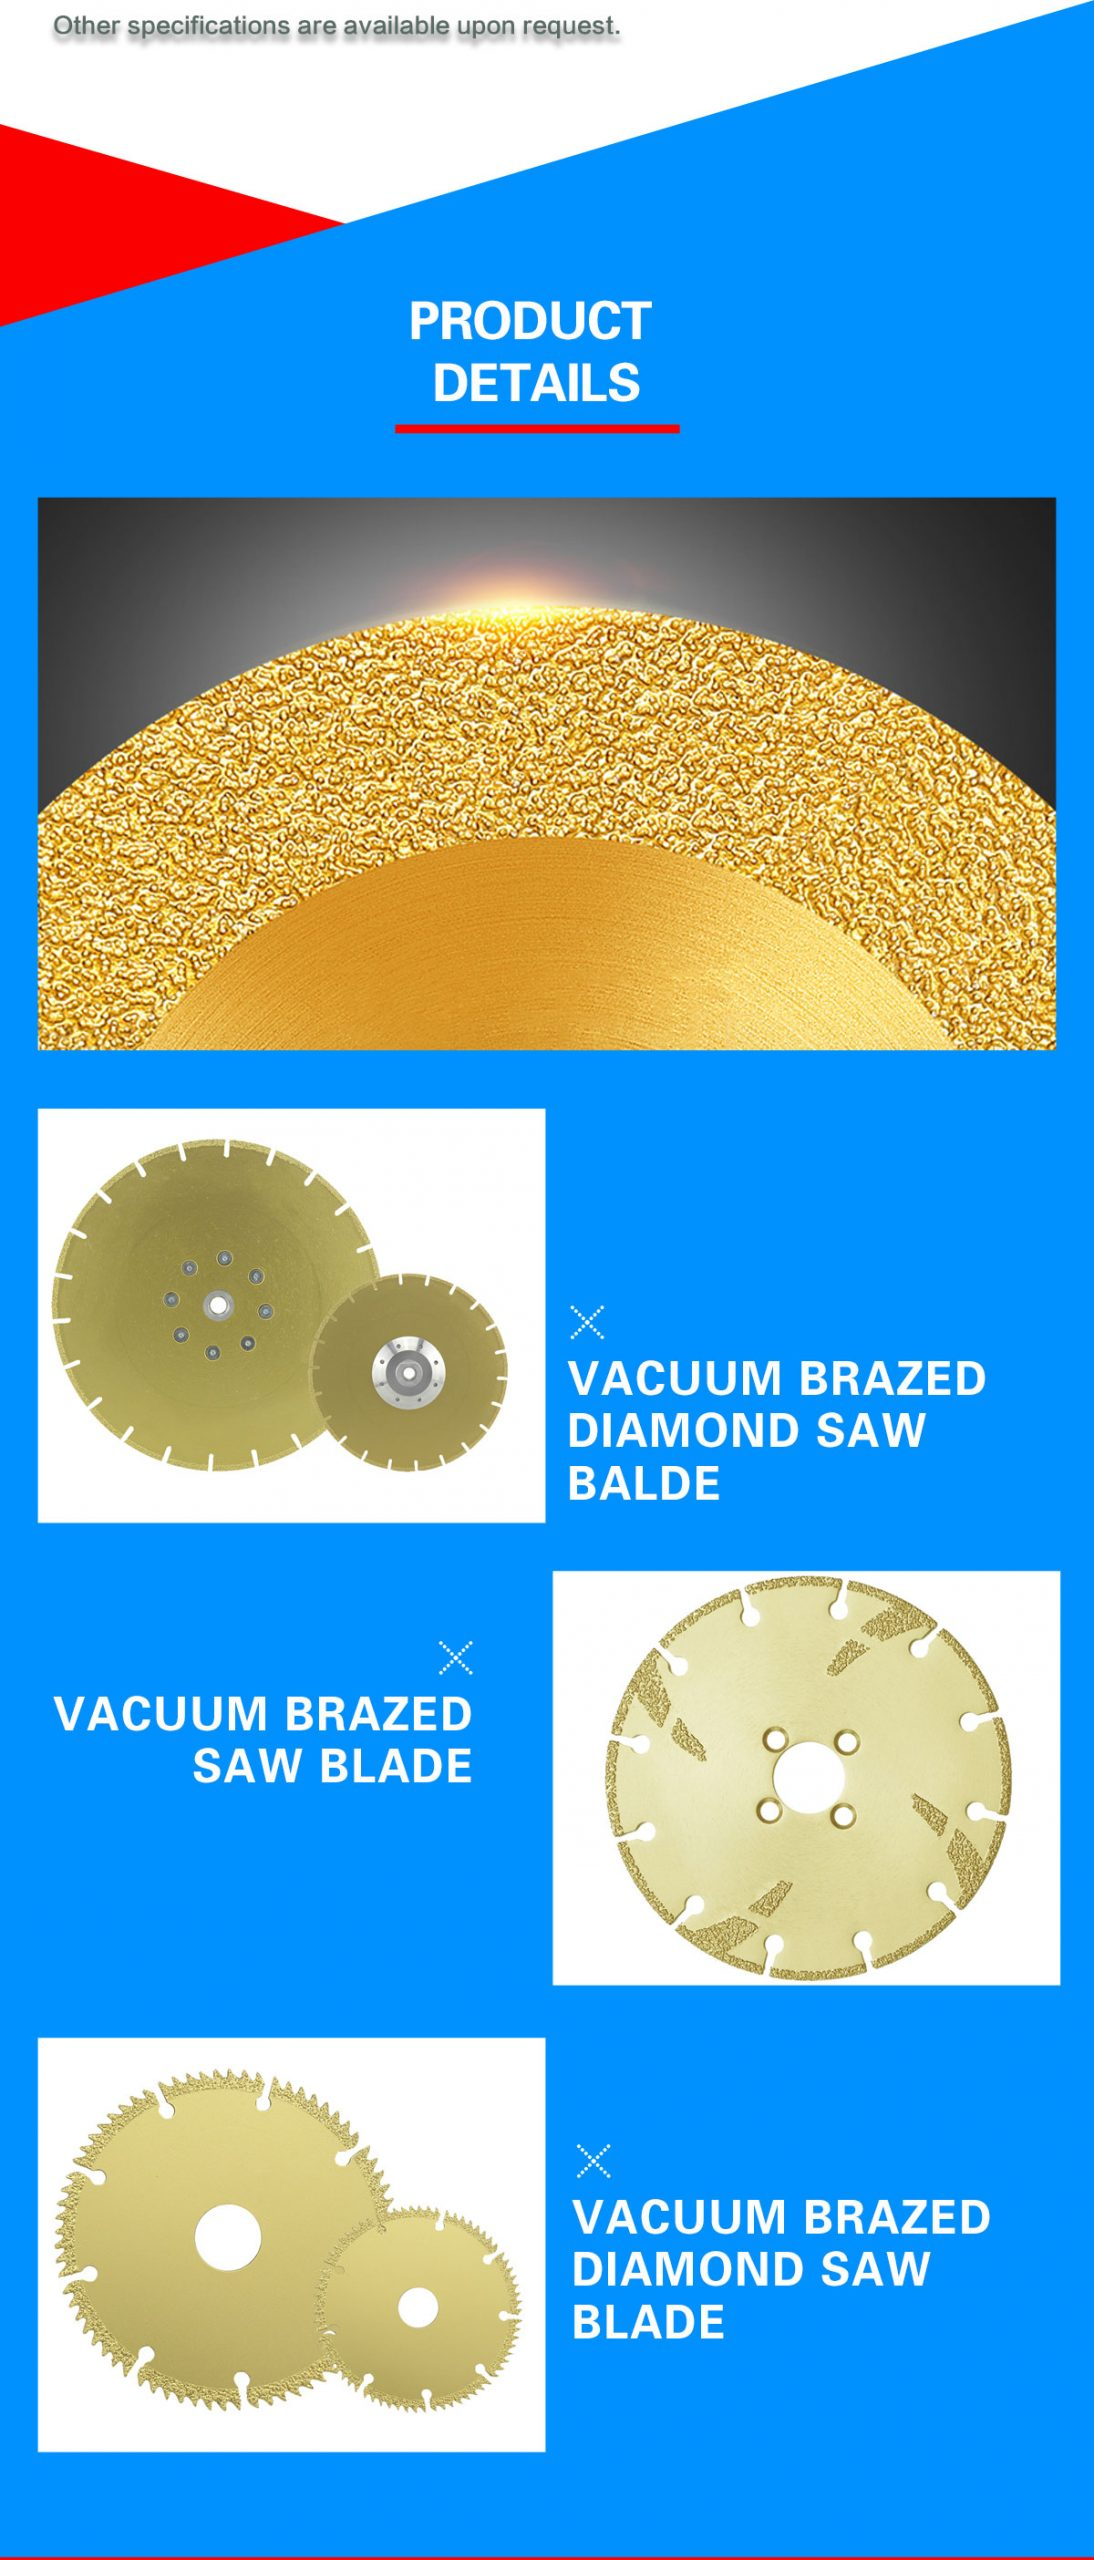 brazing saw blades for dry cutting